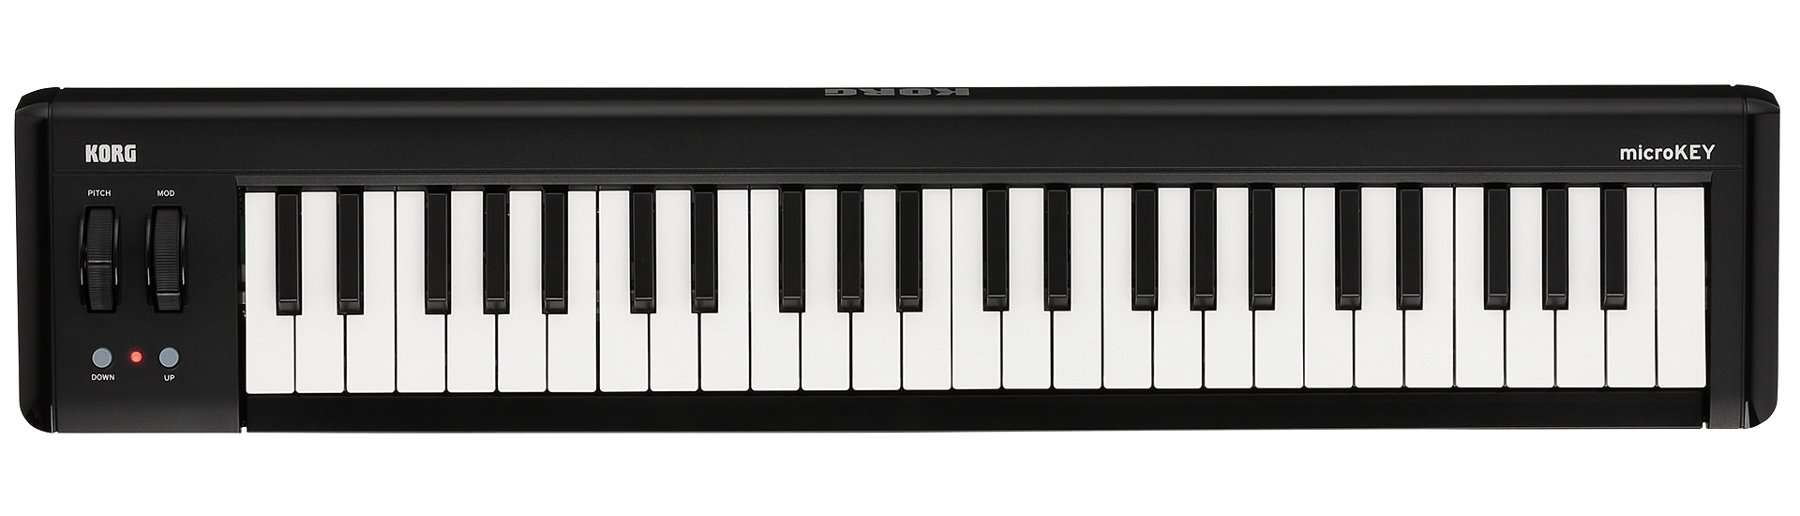 49-Key iOS-Powerable USB MIDI Controller with Pedal Input